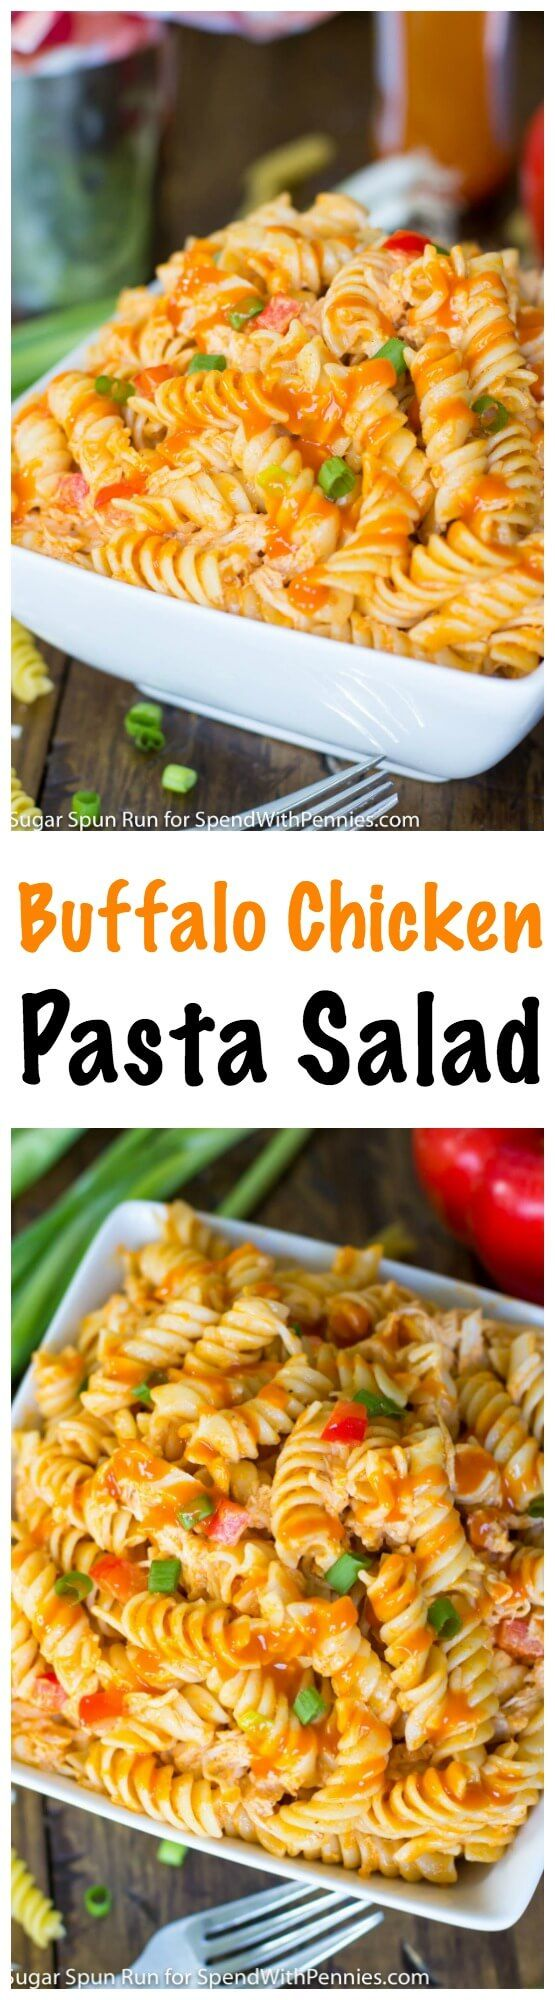 Buffalo chicken pasta recipes easy